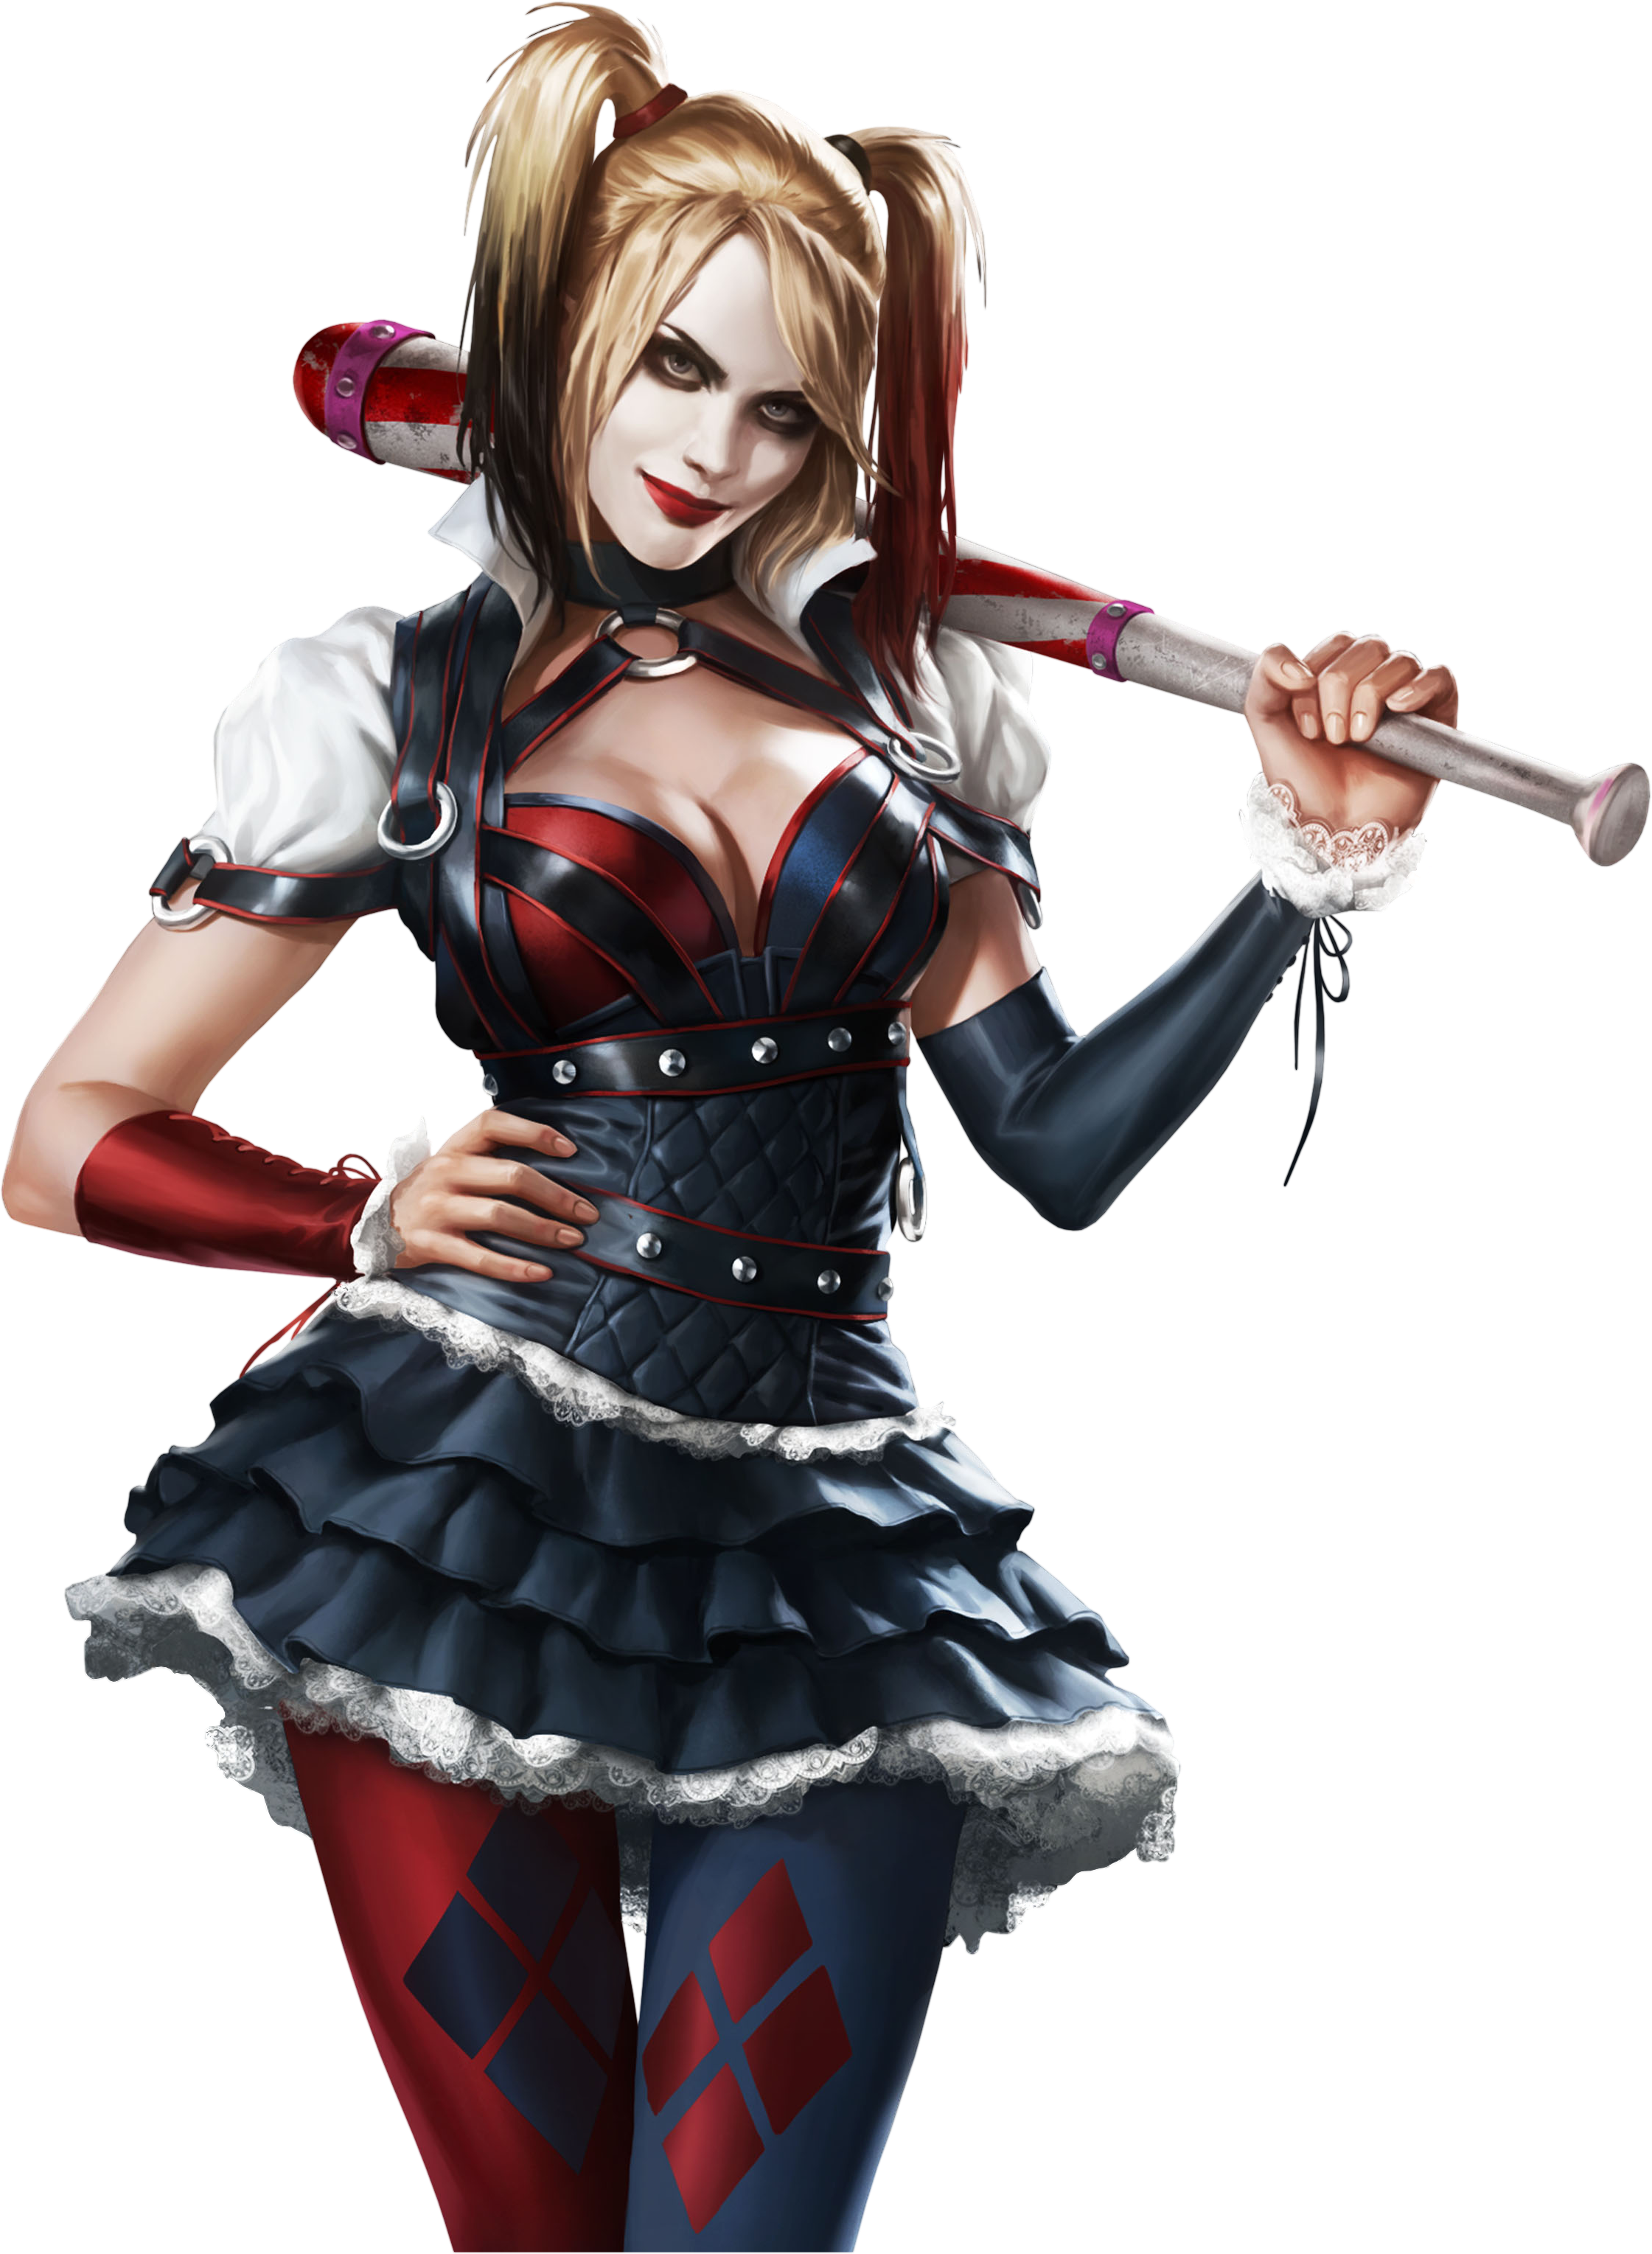 33be05532084 Batman  Arkham Knight - Harley Quinn by IvanCEs.deviantart.com ...